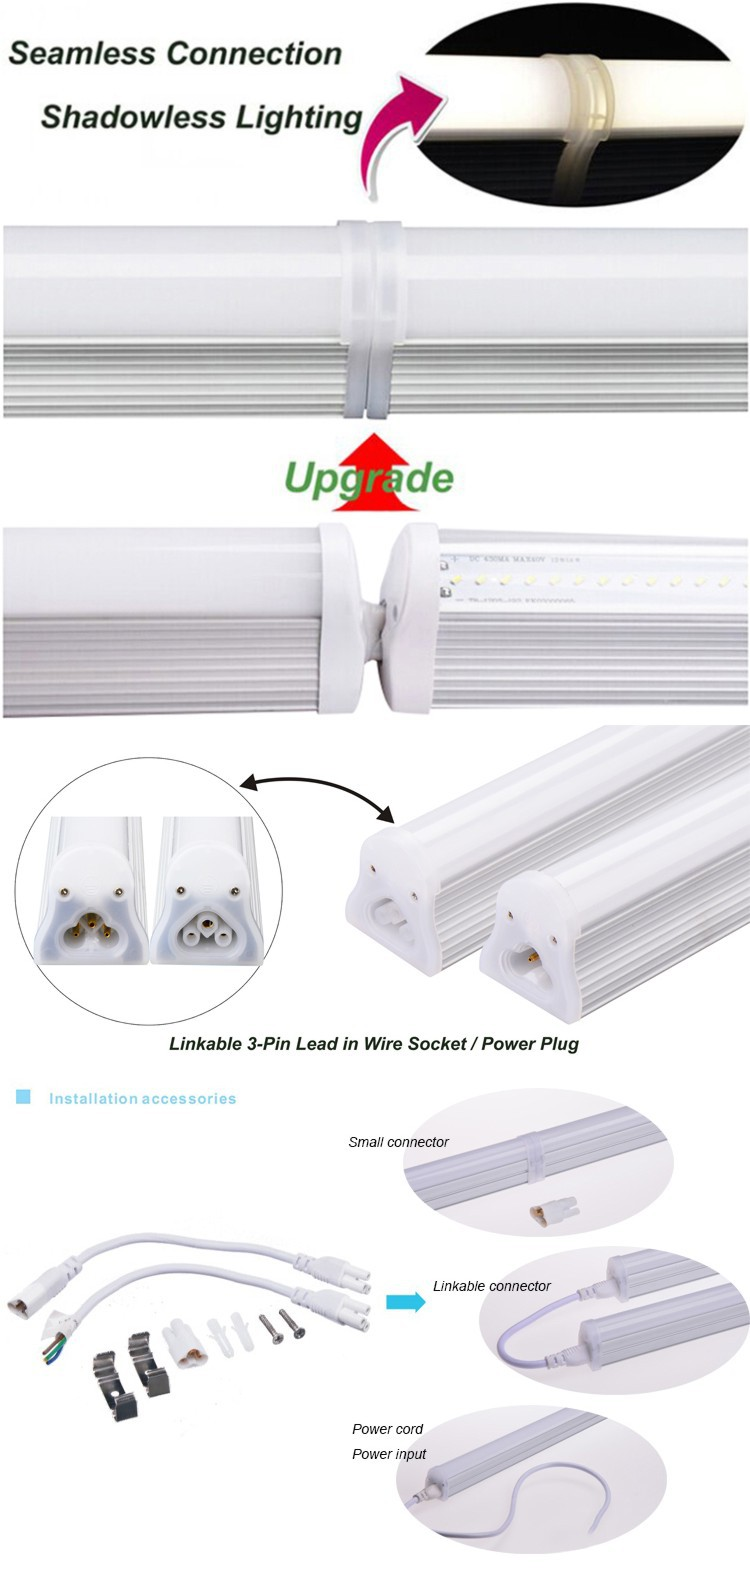 UL listed linkable integrated t8 led garage lighting  sc 1 st  Guangdong Lonyung LED Lighting Co. Ltd. - Alibaba & UL listed linkable integrated t8 led garage lighting View garage ... azcodes.com